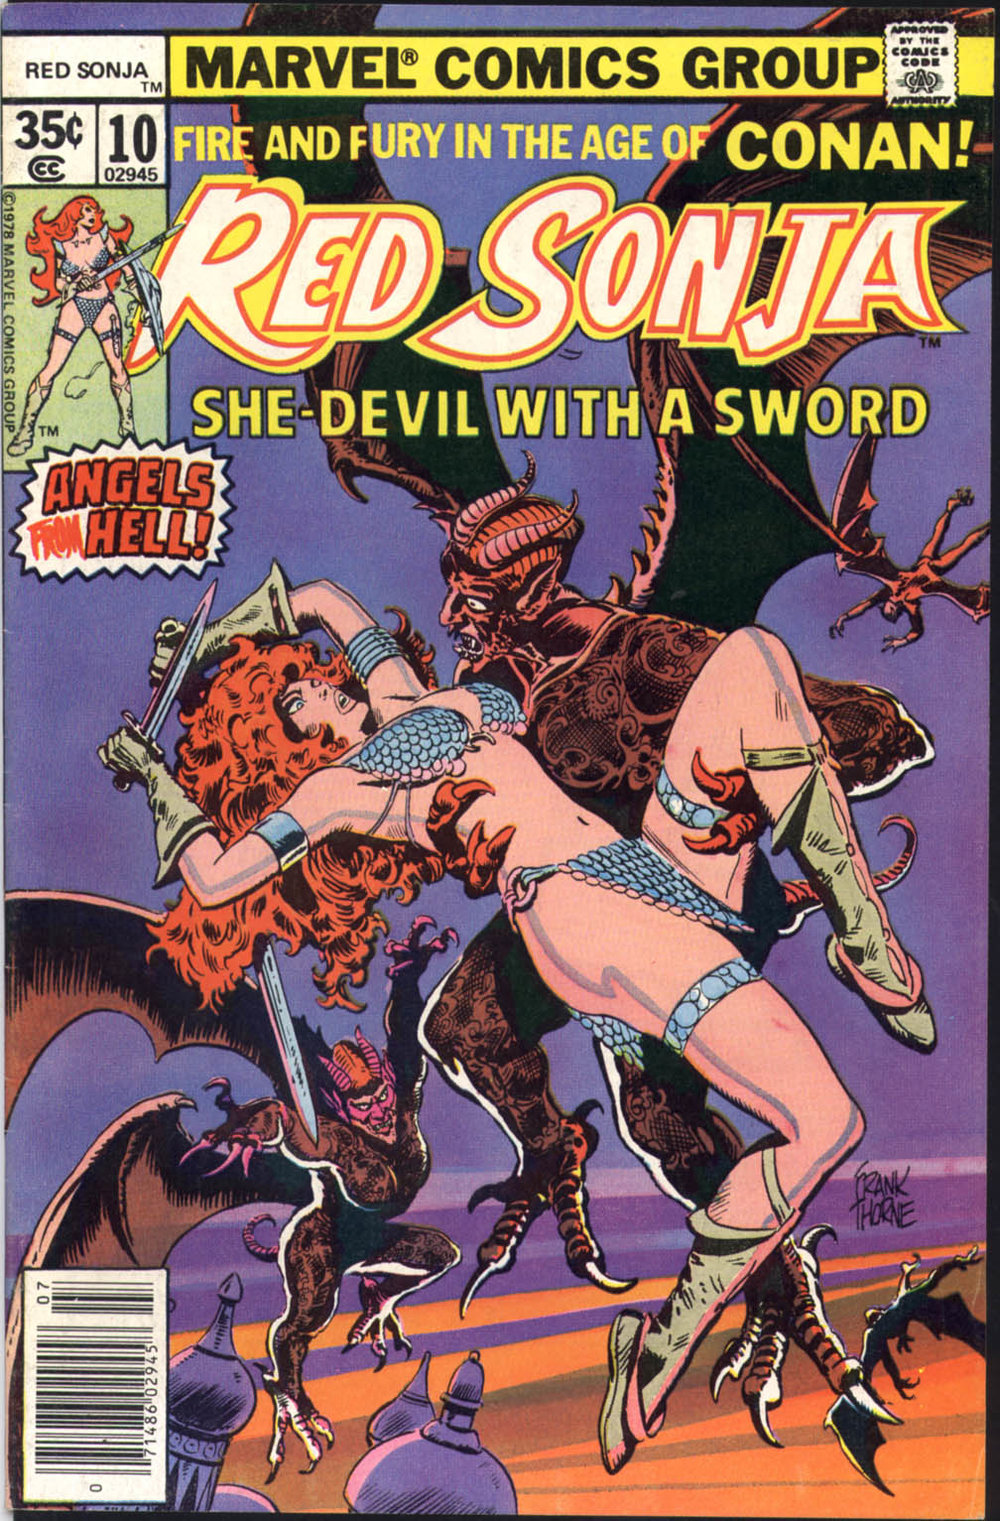 Red Sonja (1977) #10, cover by Frank Thorne.